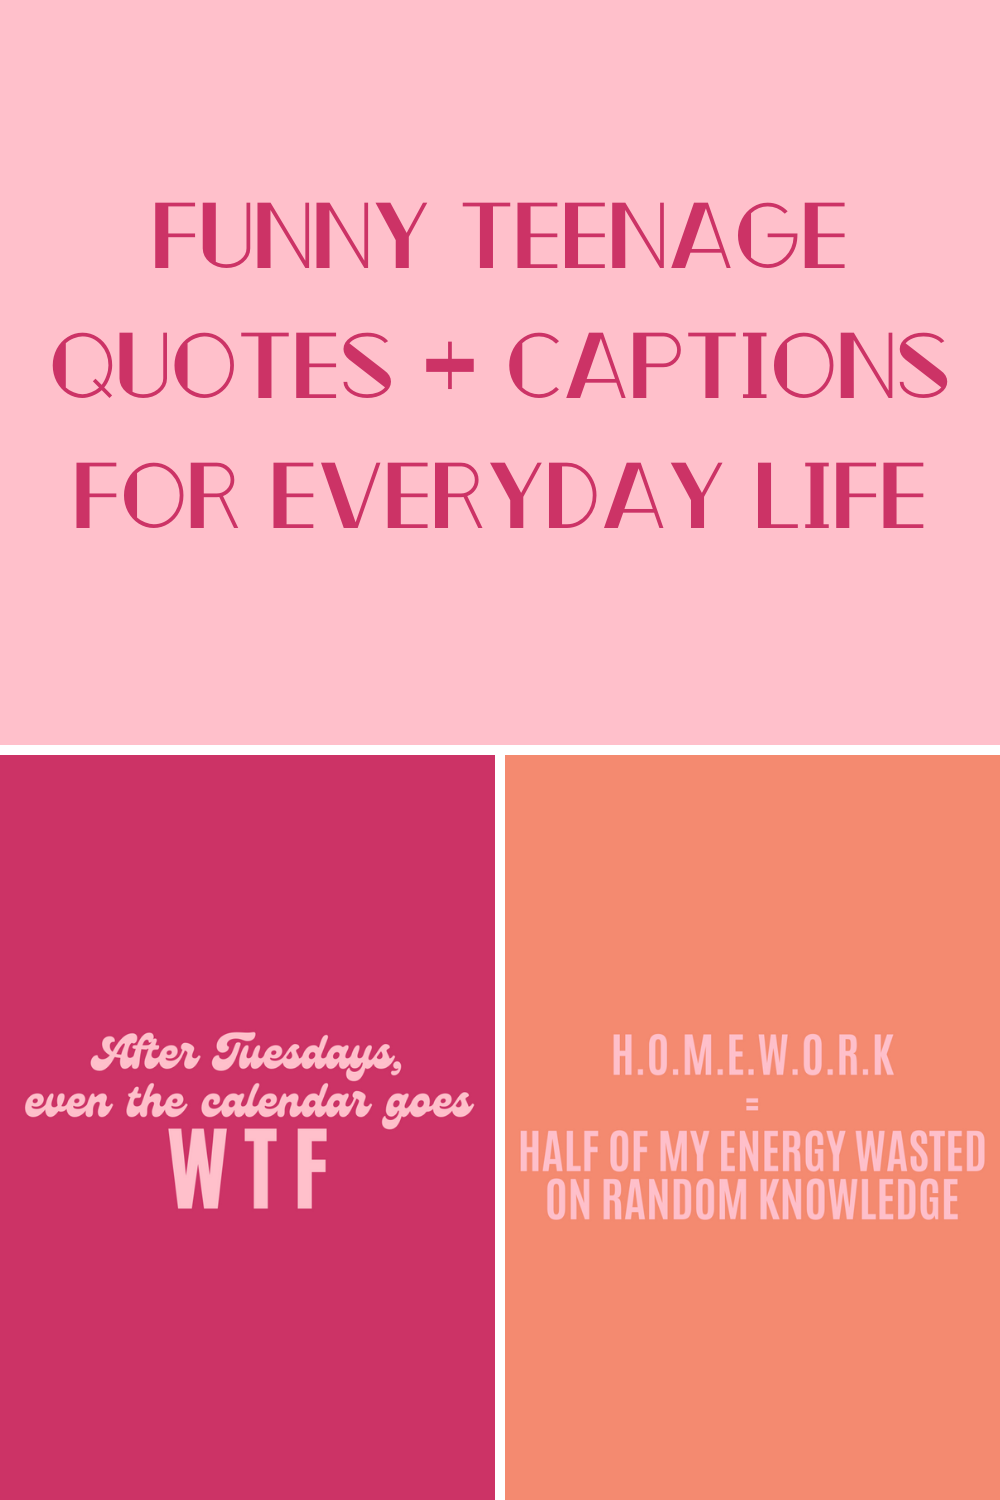 Funny Teenage Quotes